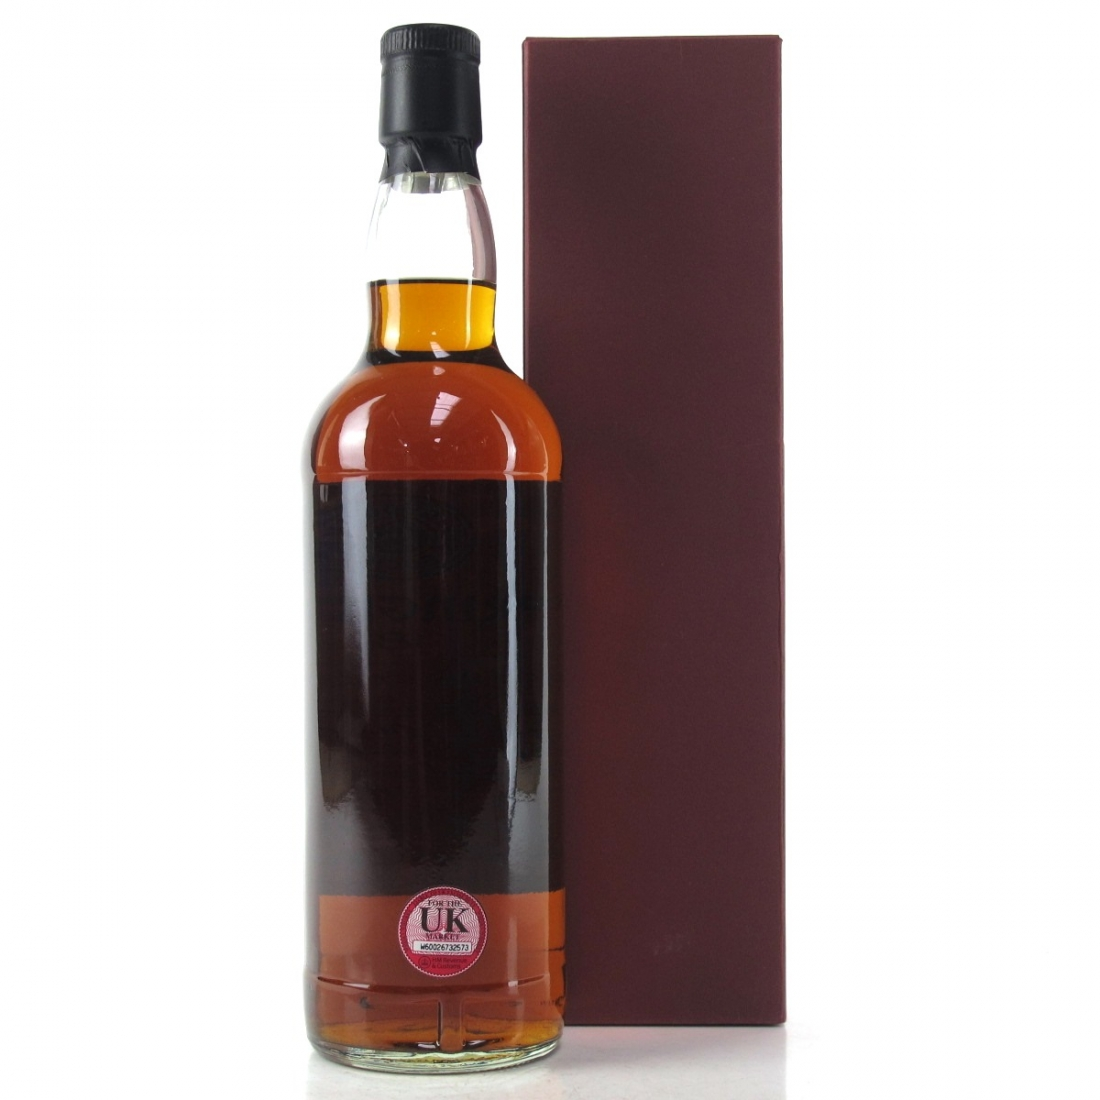 Springbank 1997 Single Cask 18 Year Old / Re-charred Sherry Butt